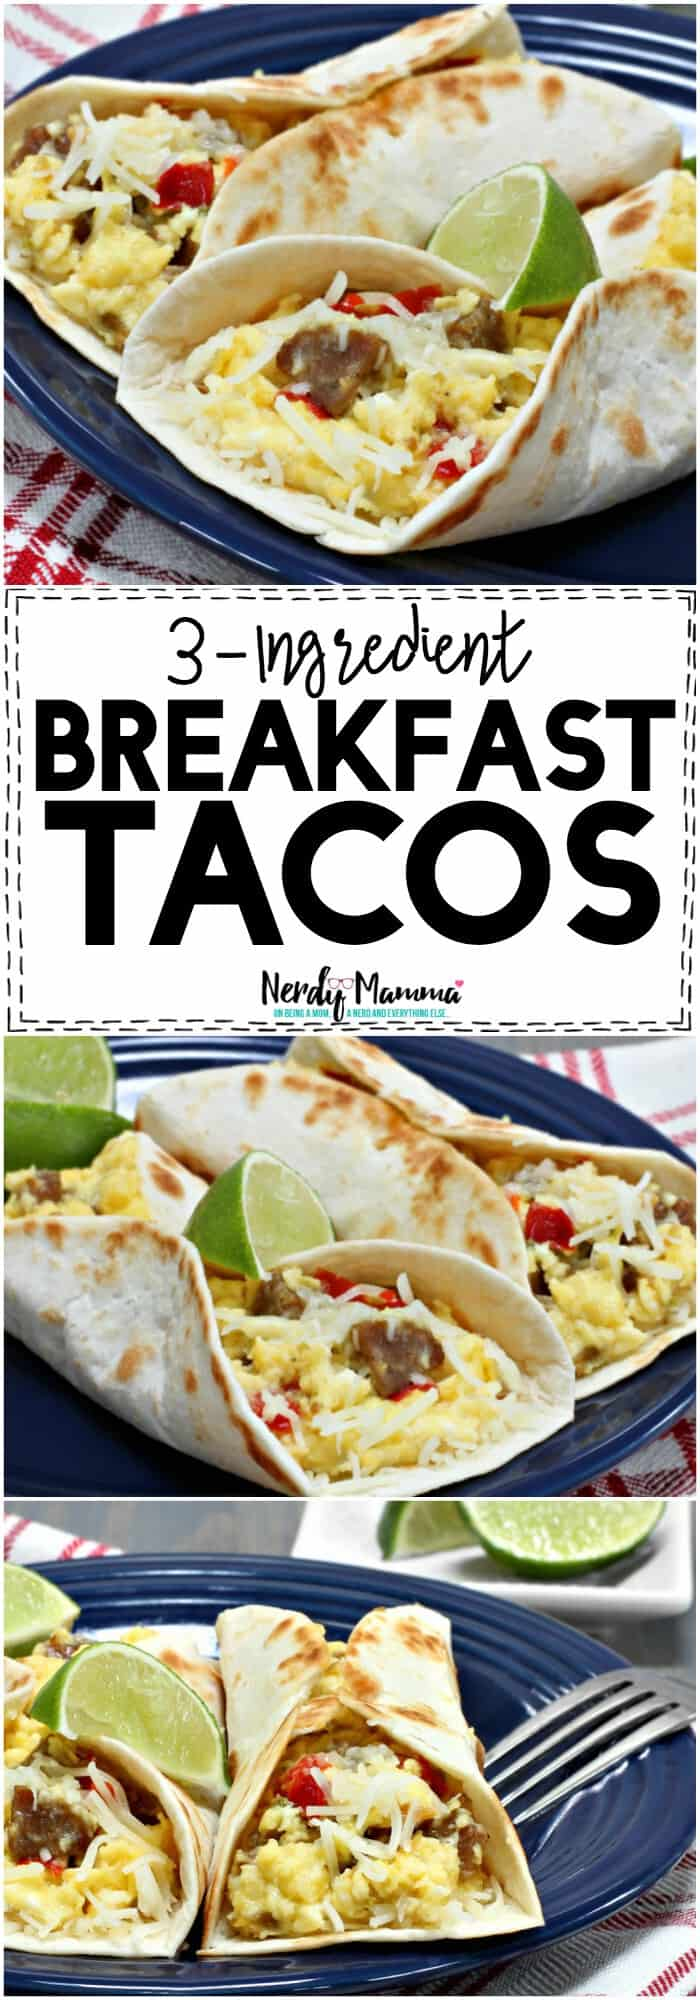 I love this 3-Ingredient Breakfast Tacos recipe. This is the single easiest breakfast taco recipe. It only has 3-ingredients! #breakfasttaco #breakfast #taco #tacos #simplerecipe #simplebreakfastrecipe #easybreakfastrecipe